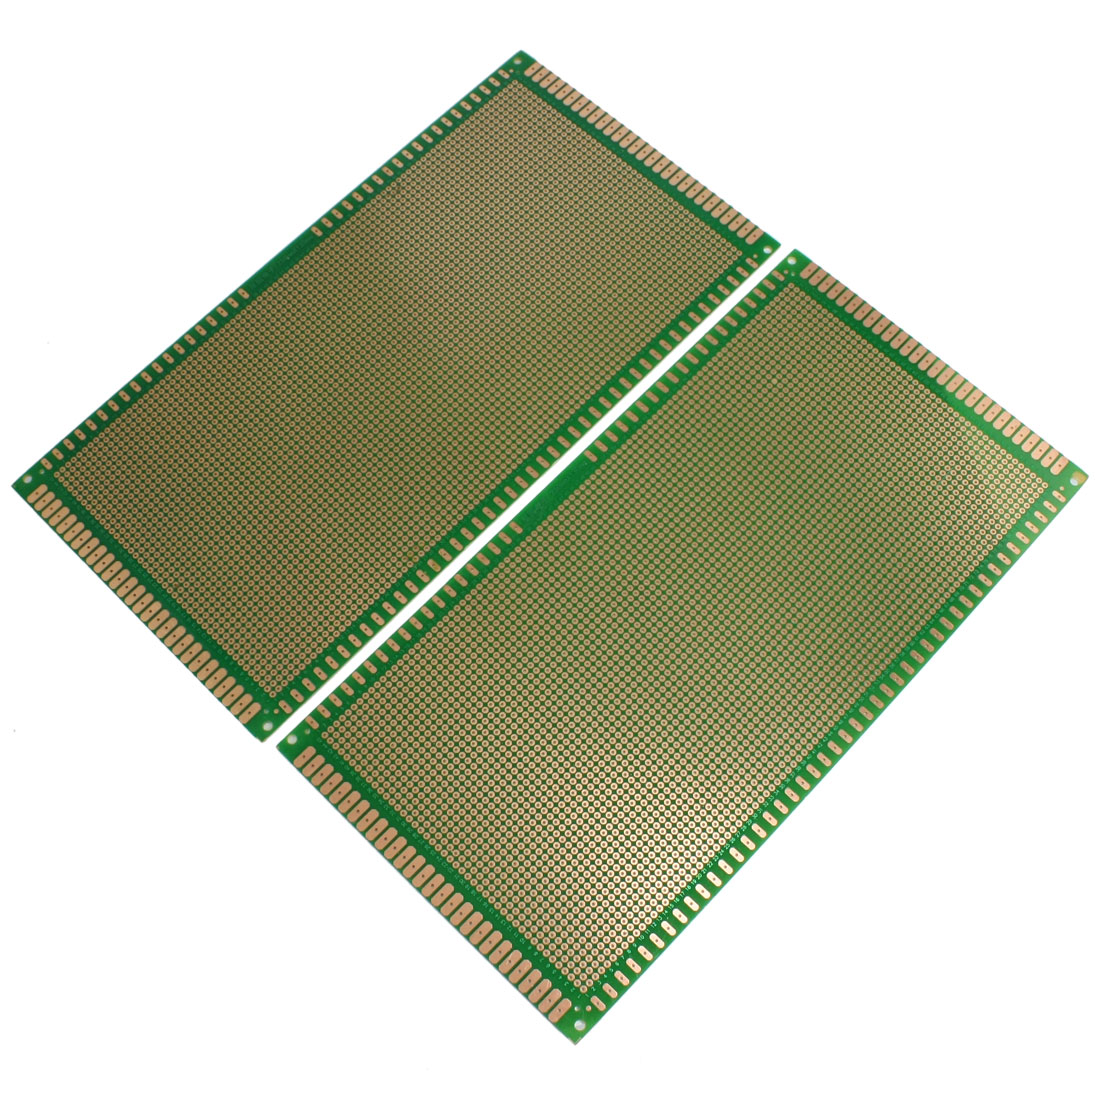 2 Pcs Prototyping Single Side PCB Board Stripboard 25x13cm